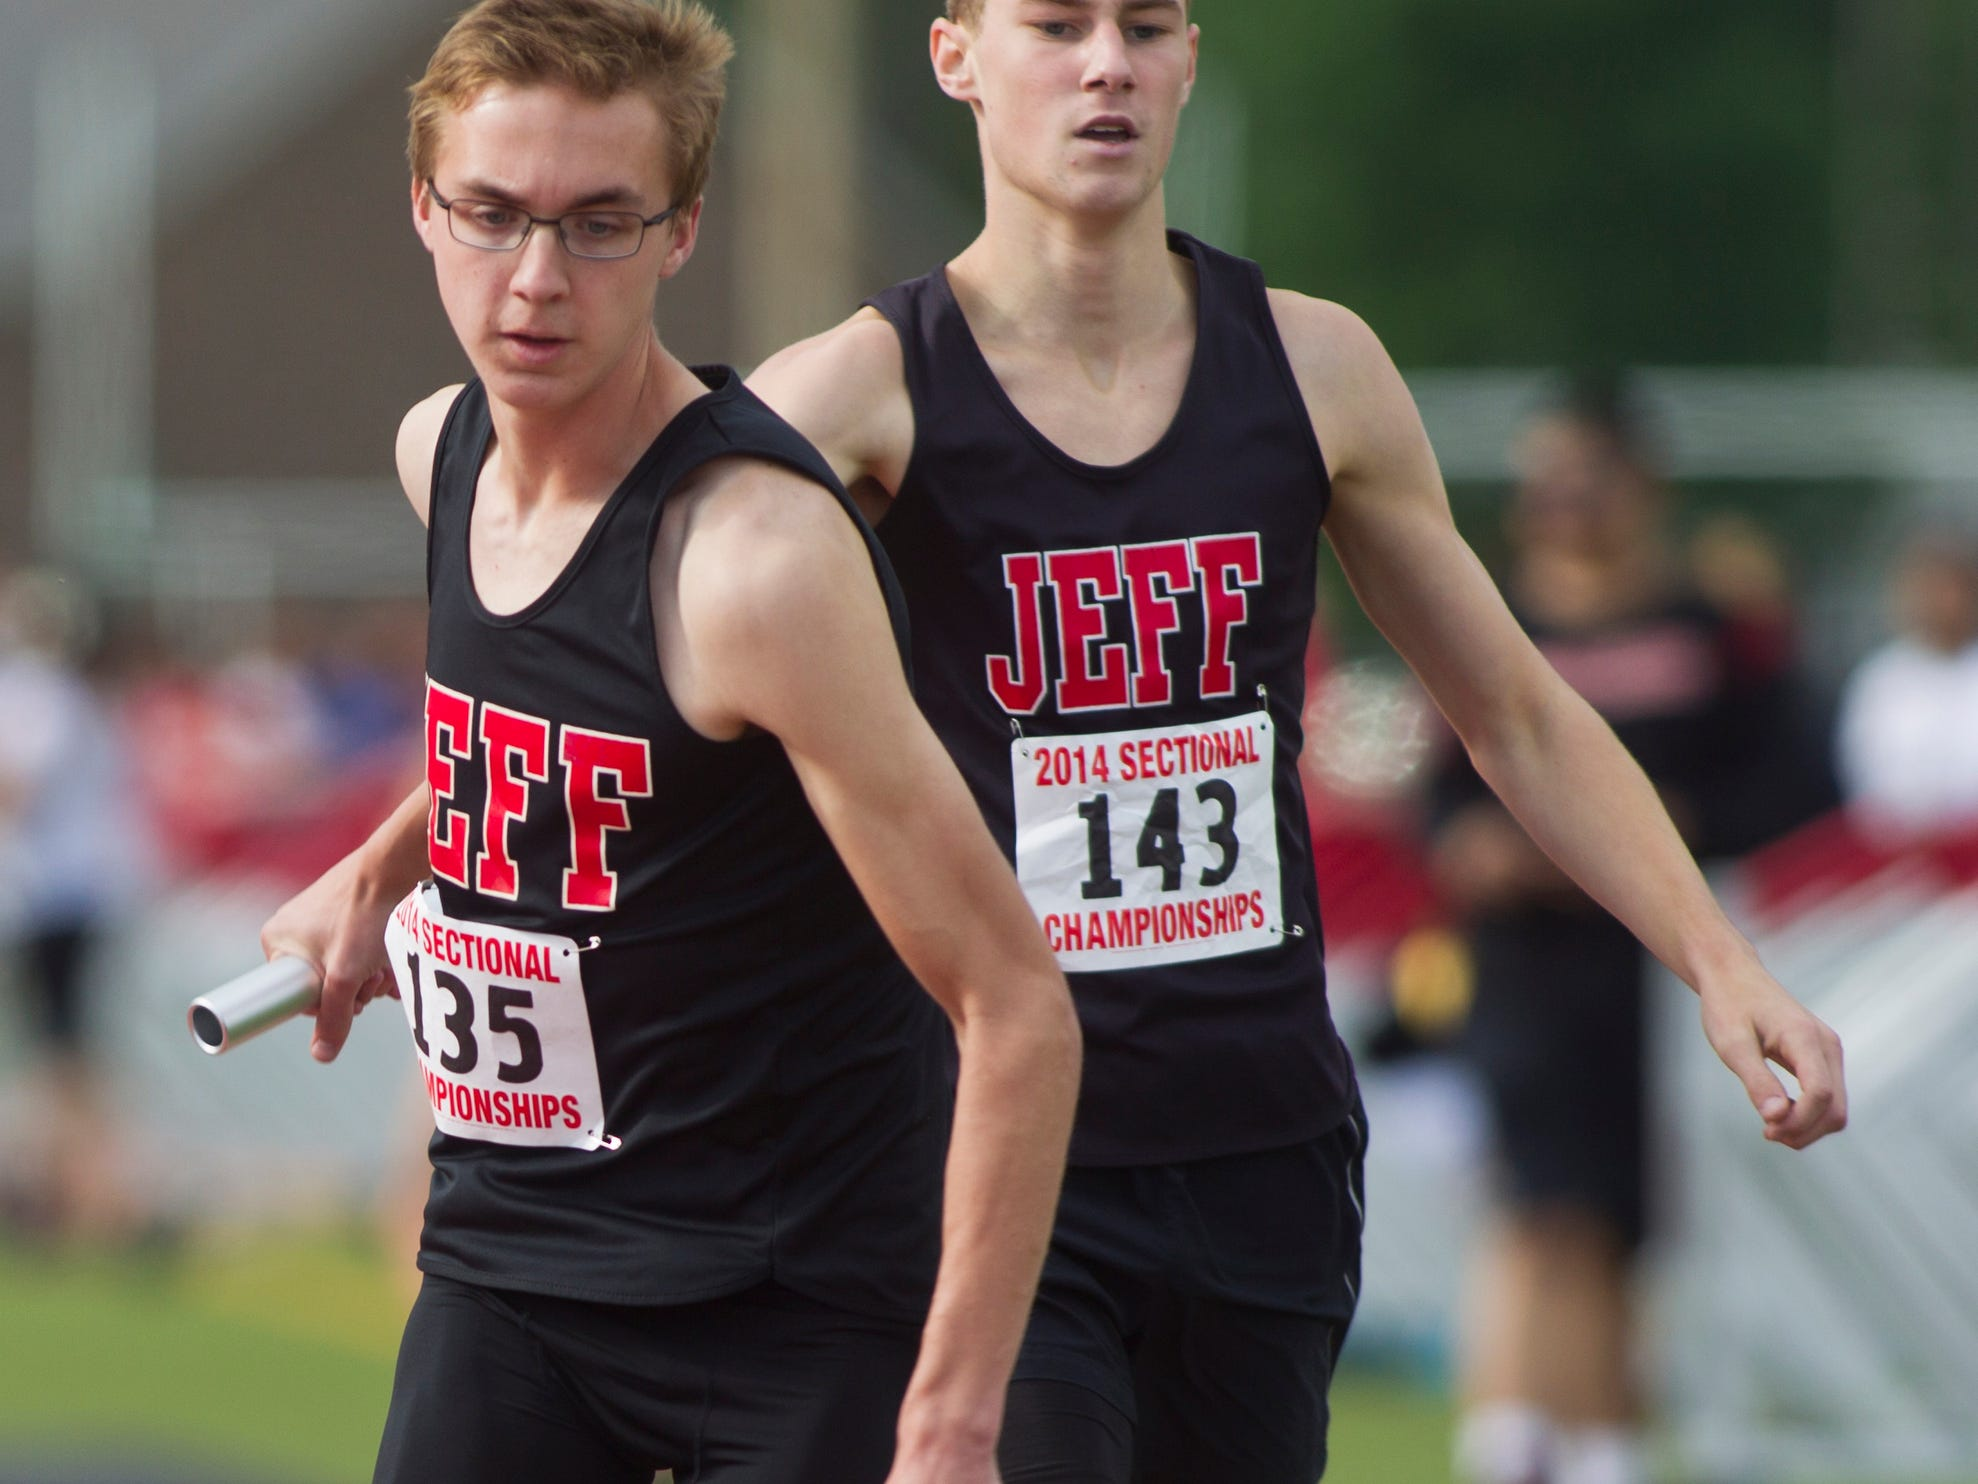 Lafayette Jeff's Daniel Feltis receives the baton from teammate Shane Shipley during the 3,200 meter relay at last year's sectional.